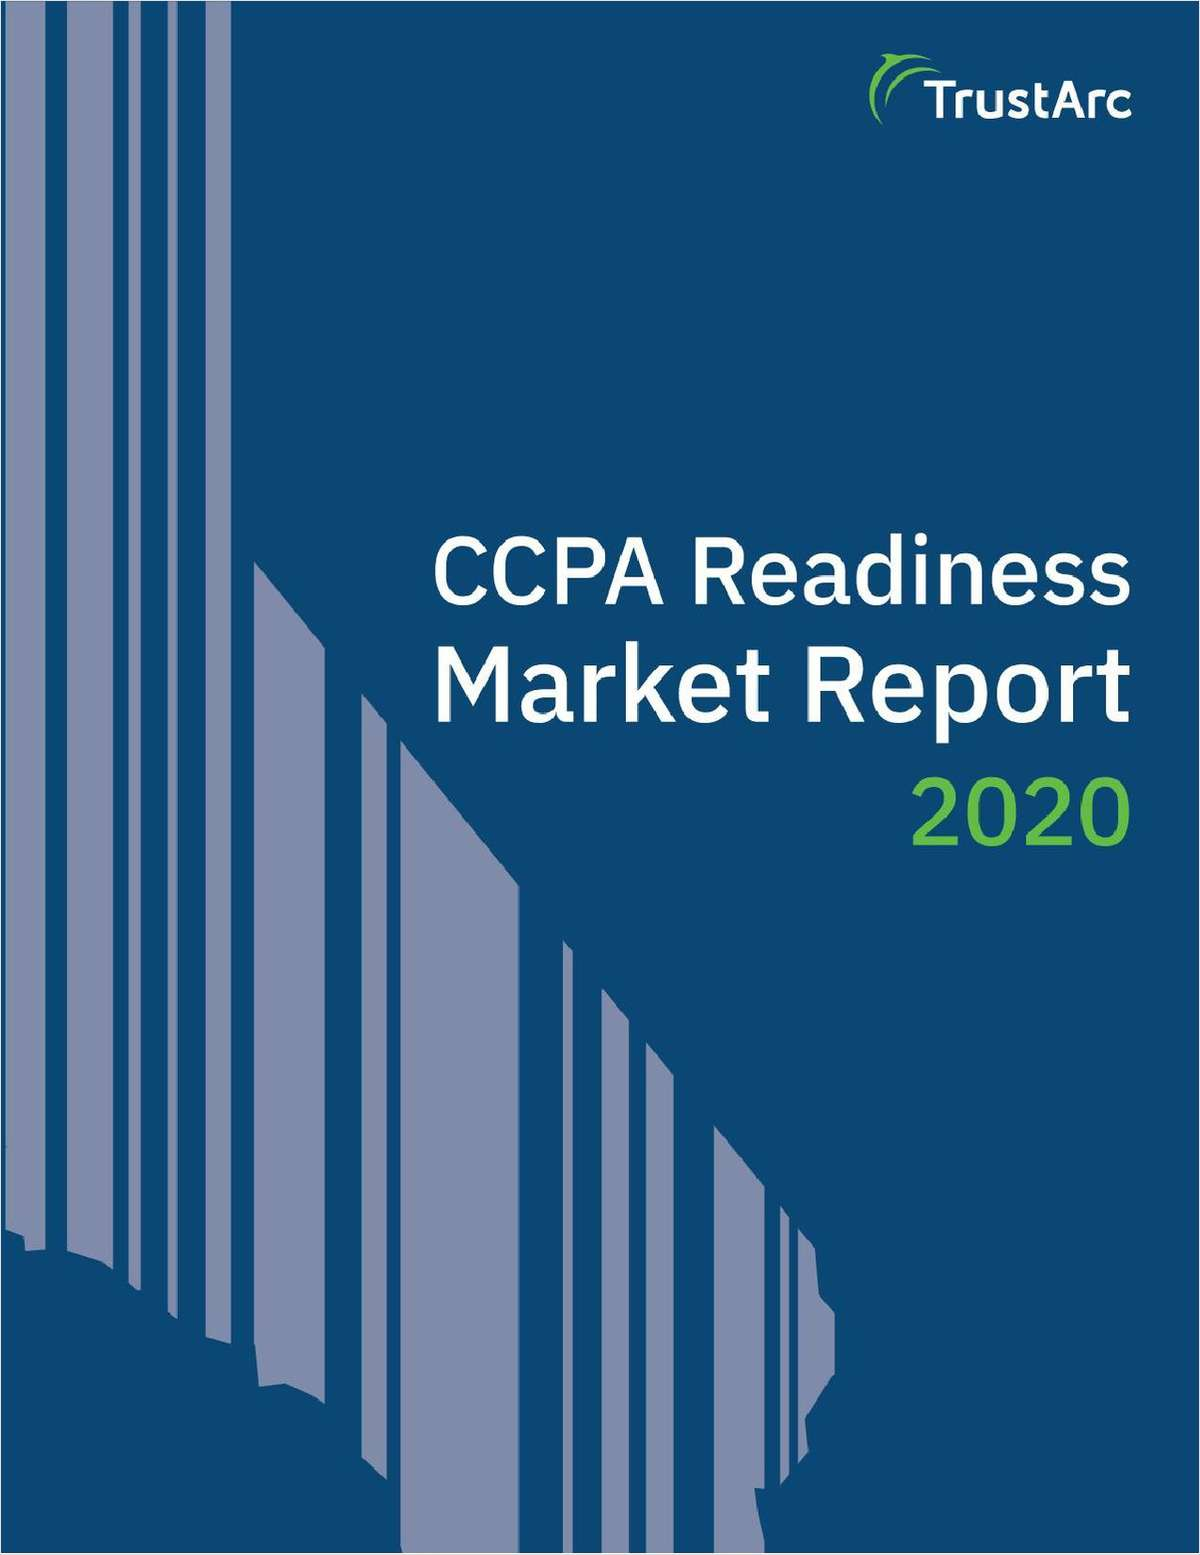 CCPA Readiness Market Report 2020